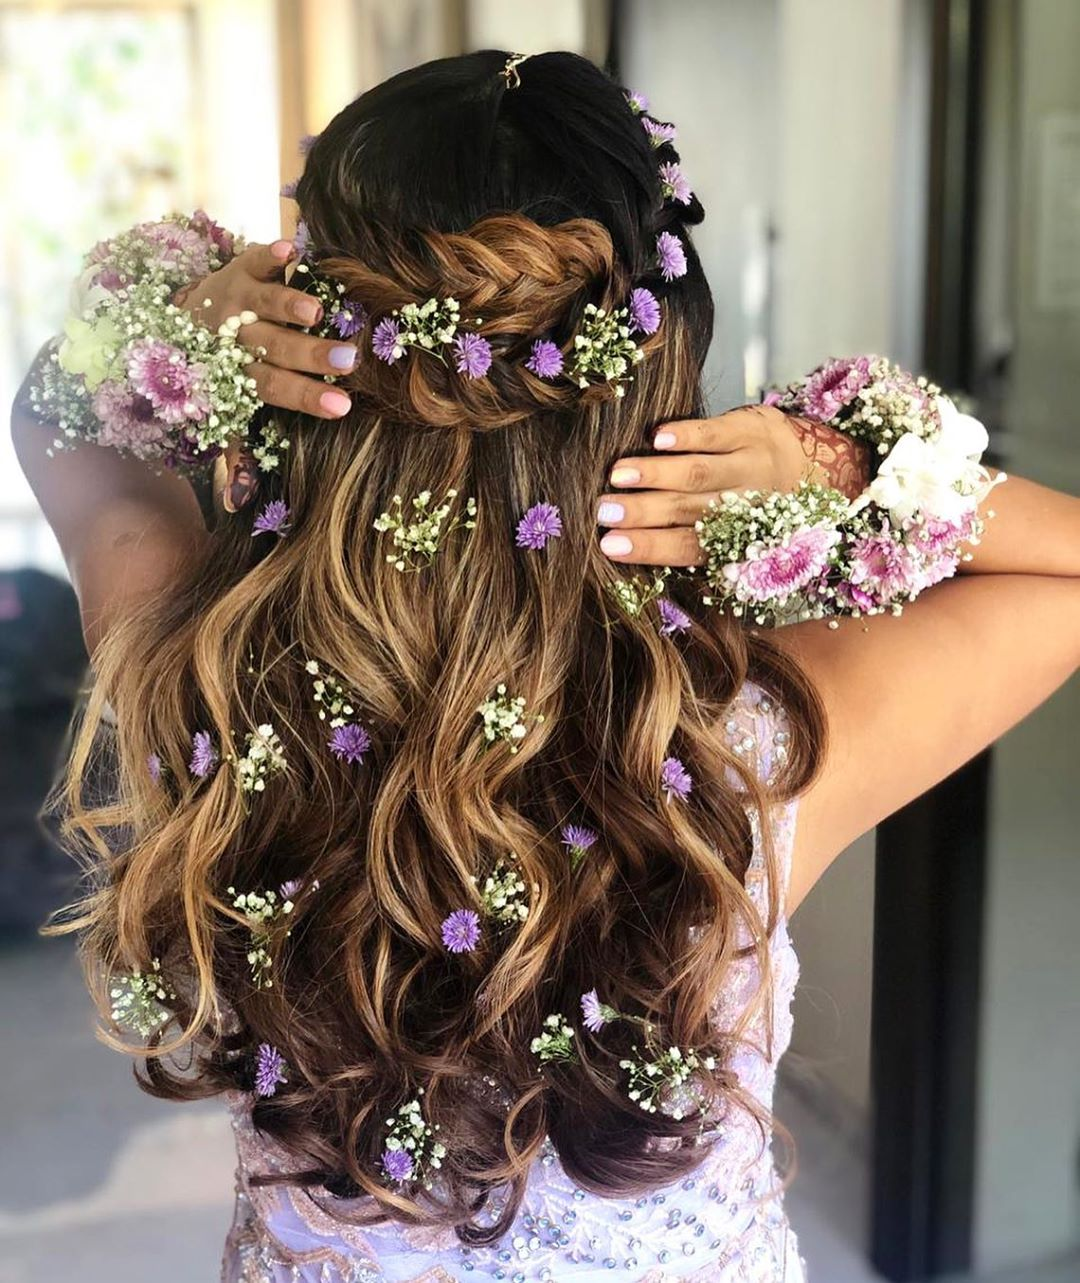 Indian Loose Hair Wedding Hairstyles: These Are The Best Bridal Hairstyles For Indian Brides In 2019